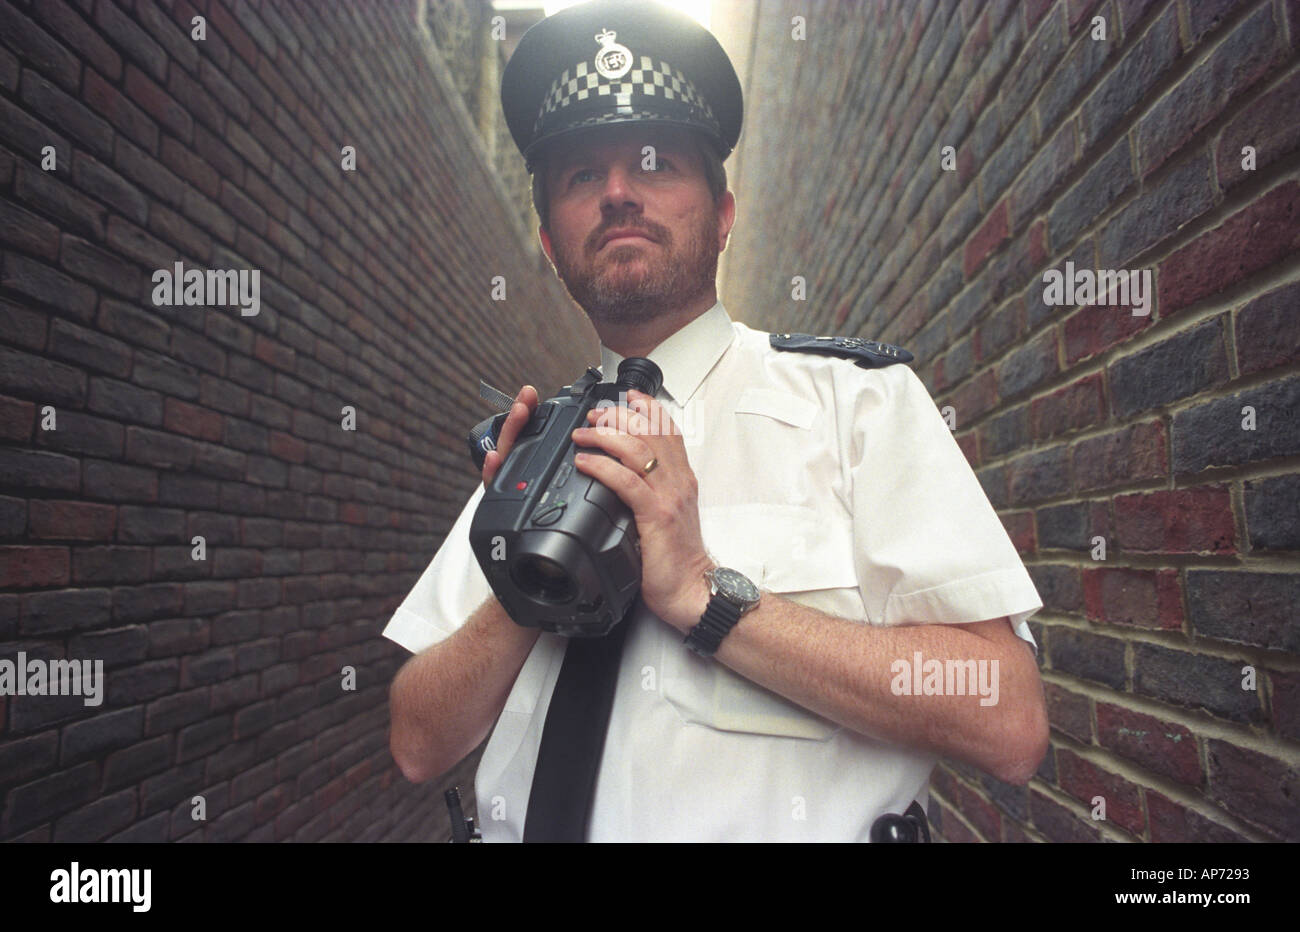 British policeman monitoring events with a video camera Picture by Andrew Hasson 1997 - Stock Image